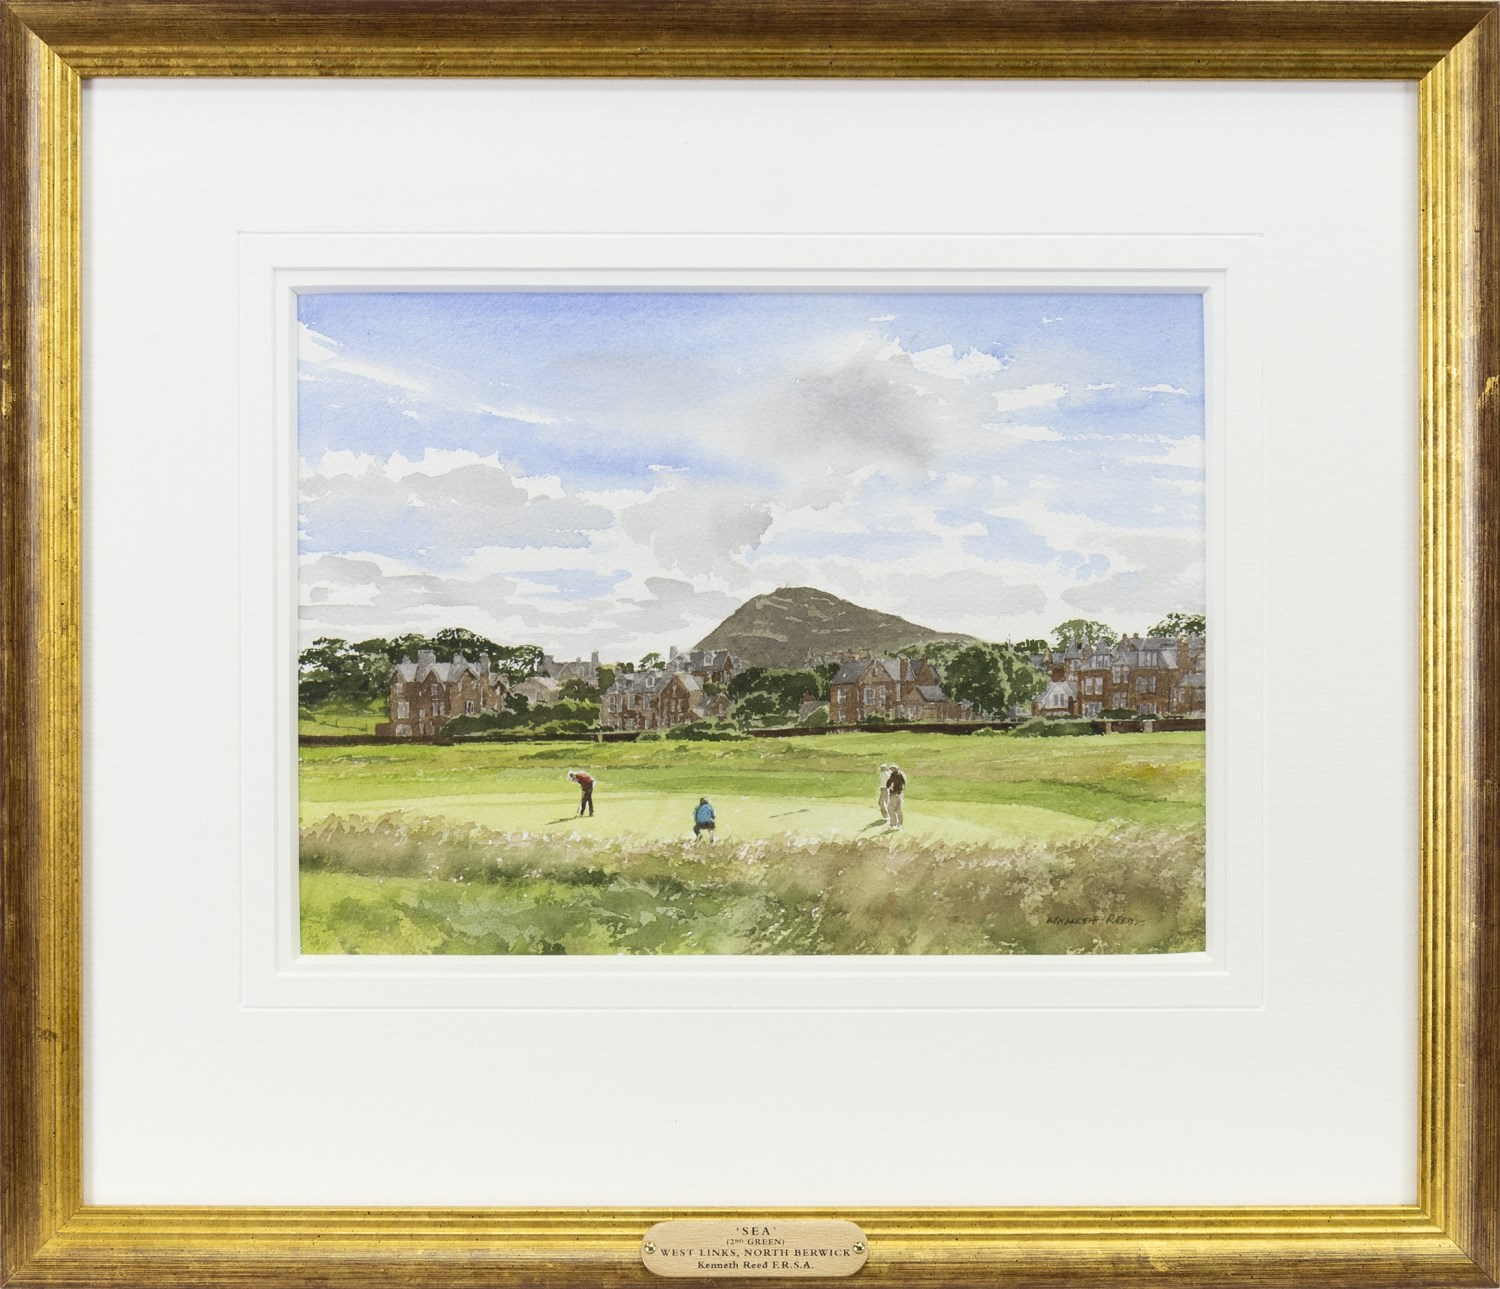 Lot 515 - 'SEA' (2ND GREEN), WEST LINKS, NORTH BERWICK, A WATERCOLOUR BY KENNETH REED